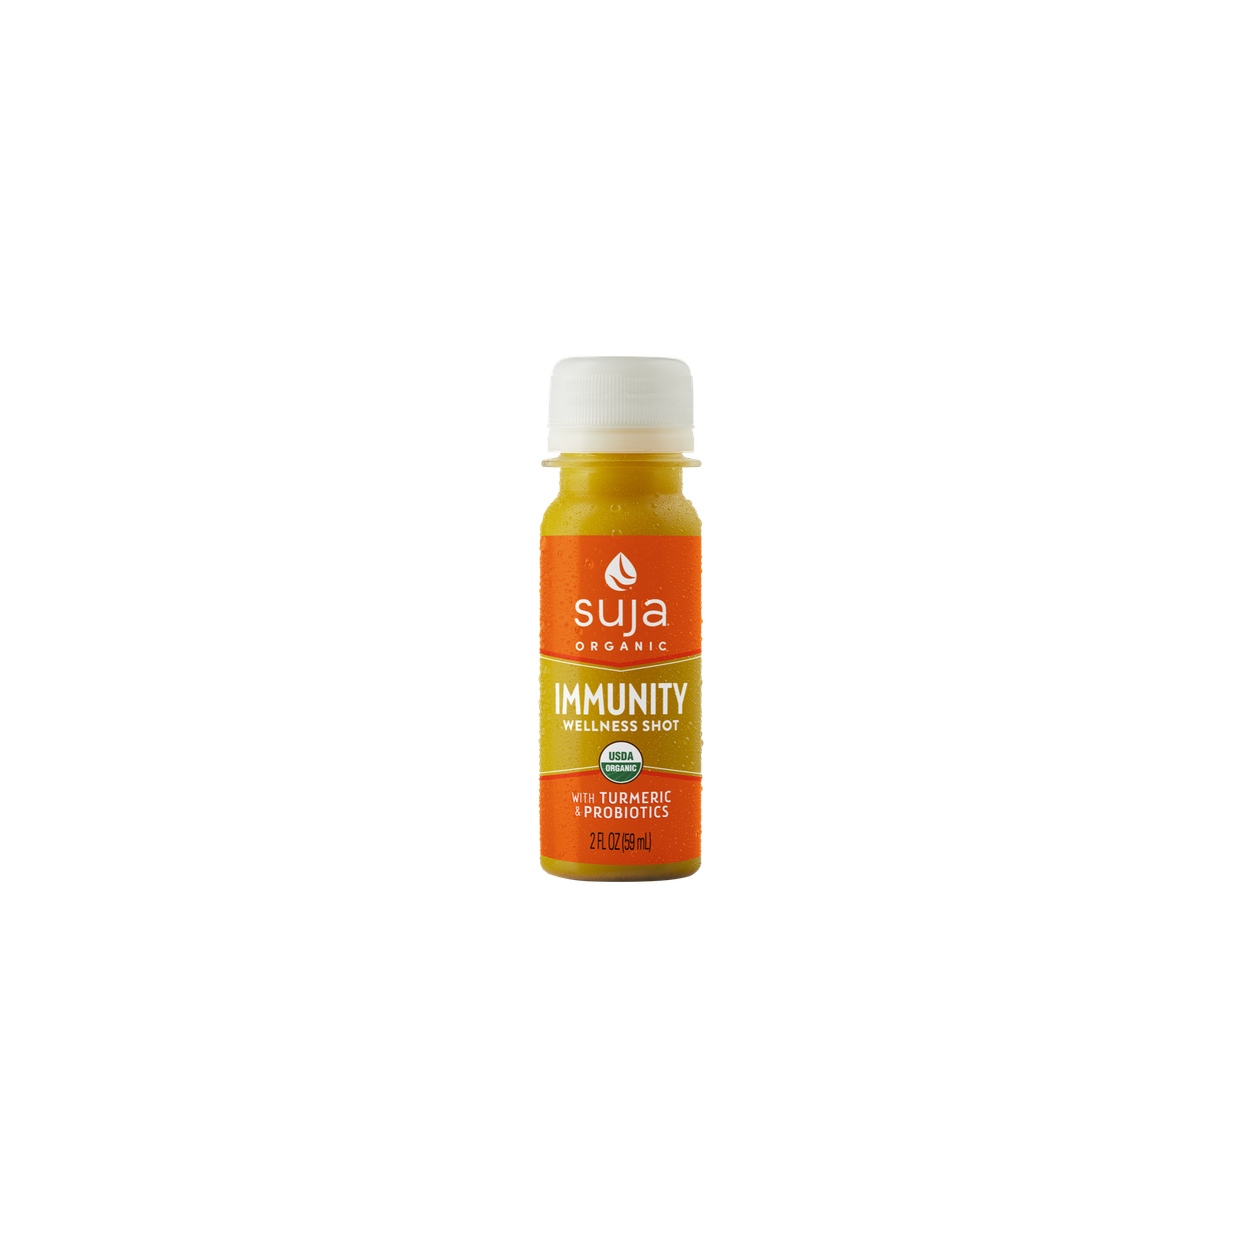 suja immunity wellness shot